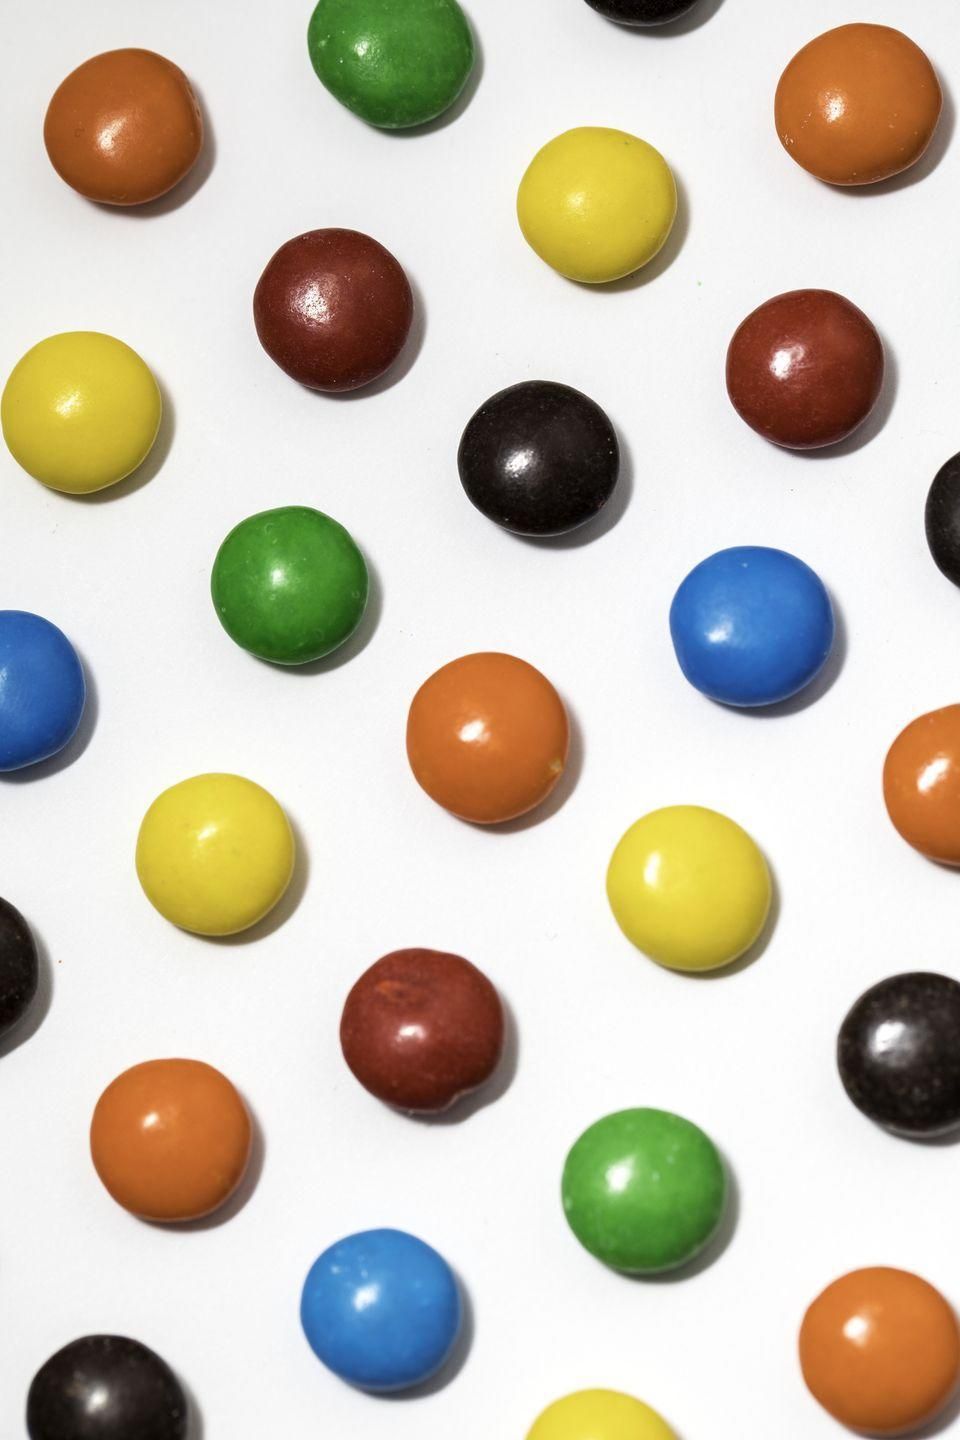 <p><strong><em>How many colors of M&Ms are there in a normal bag?</em></strong></p><p><strong>Answer:</strong> Six. The colors in a regular bag of M&Ms are red, orange, yellow, green, blue, and brown. In 1995, consumers were asked to vote on what color they wanted to replace the original tan M&Ms. Blue won and was introduced later that same year.</p>